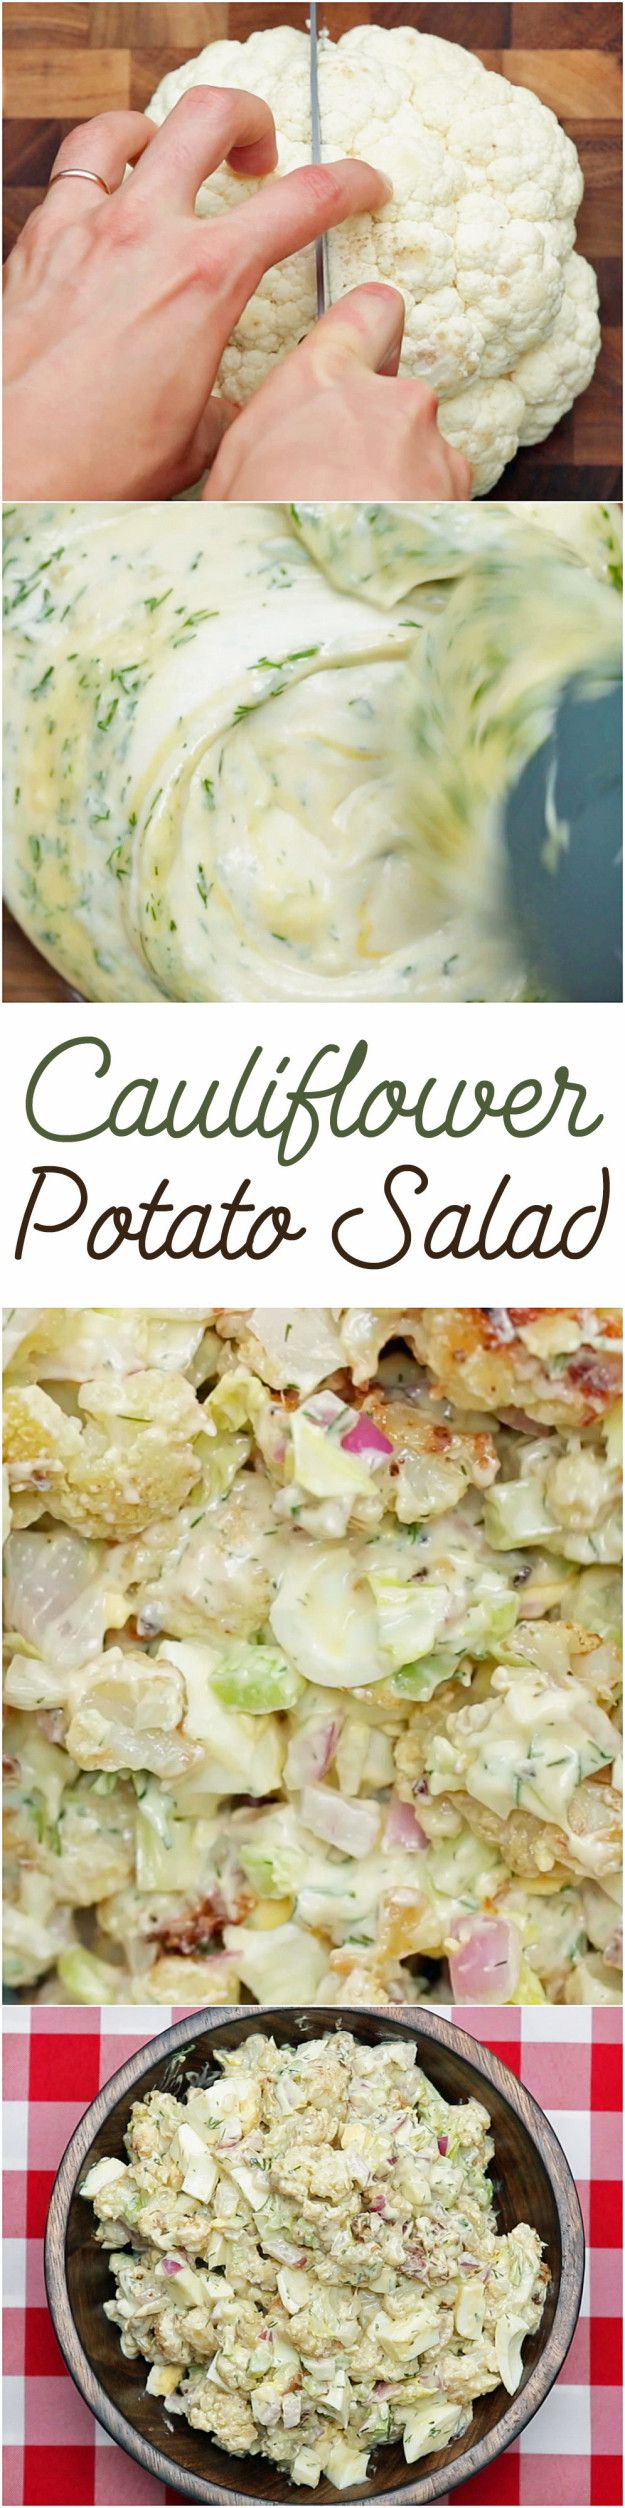 Cauliflower Potato Salad | Here's Why Cauliflower Is The Best Addition To Potato Salad